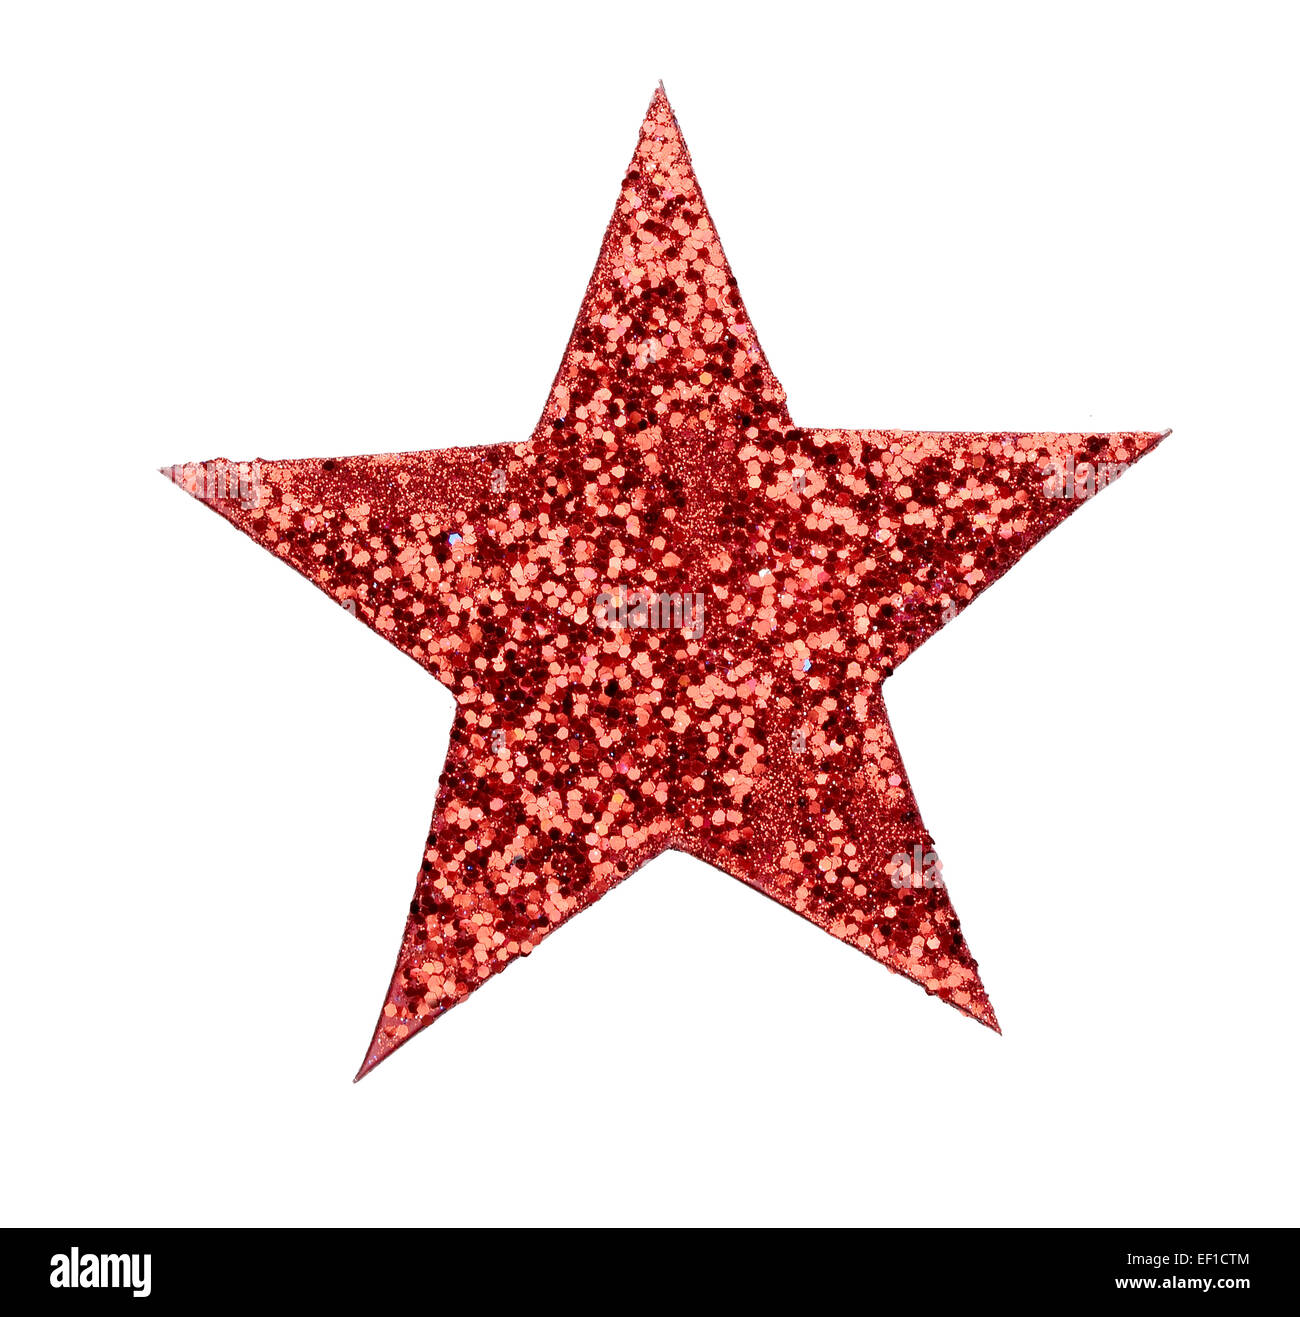 Red Glittering star cutout - Stock Image